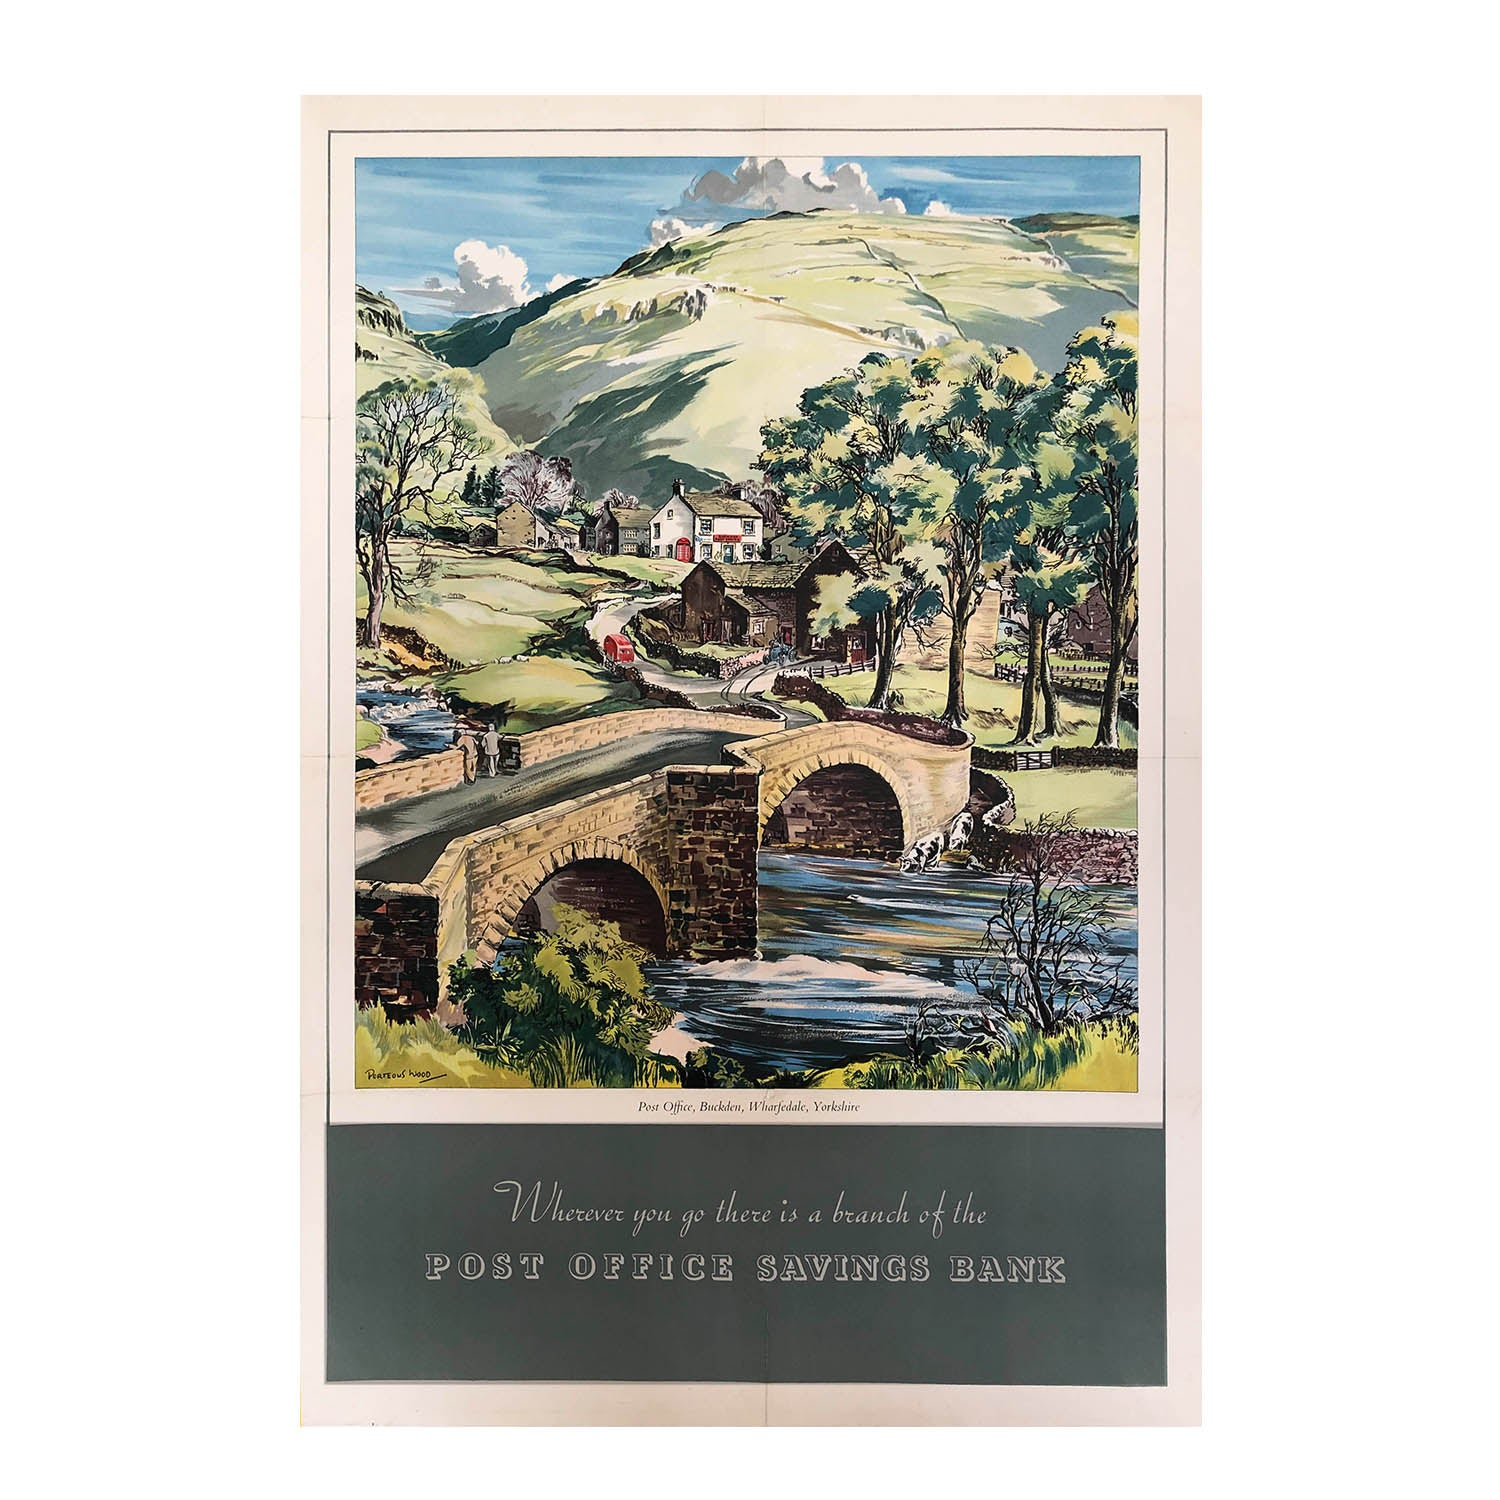 An original, vintage, Post Office Savings Bank poster depicting Buckden Post Office and village in Wharfdale, Yorkshire